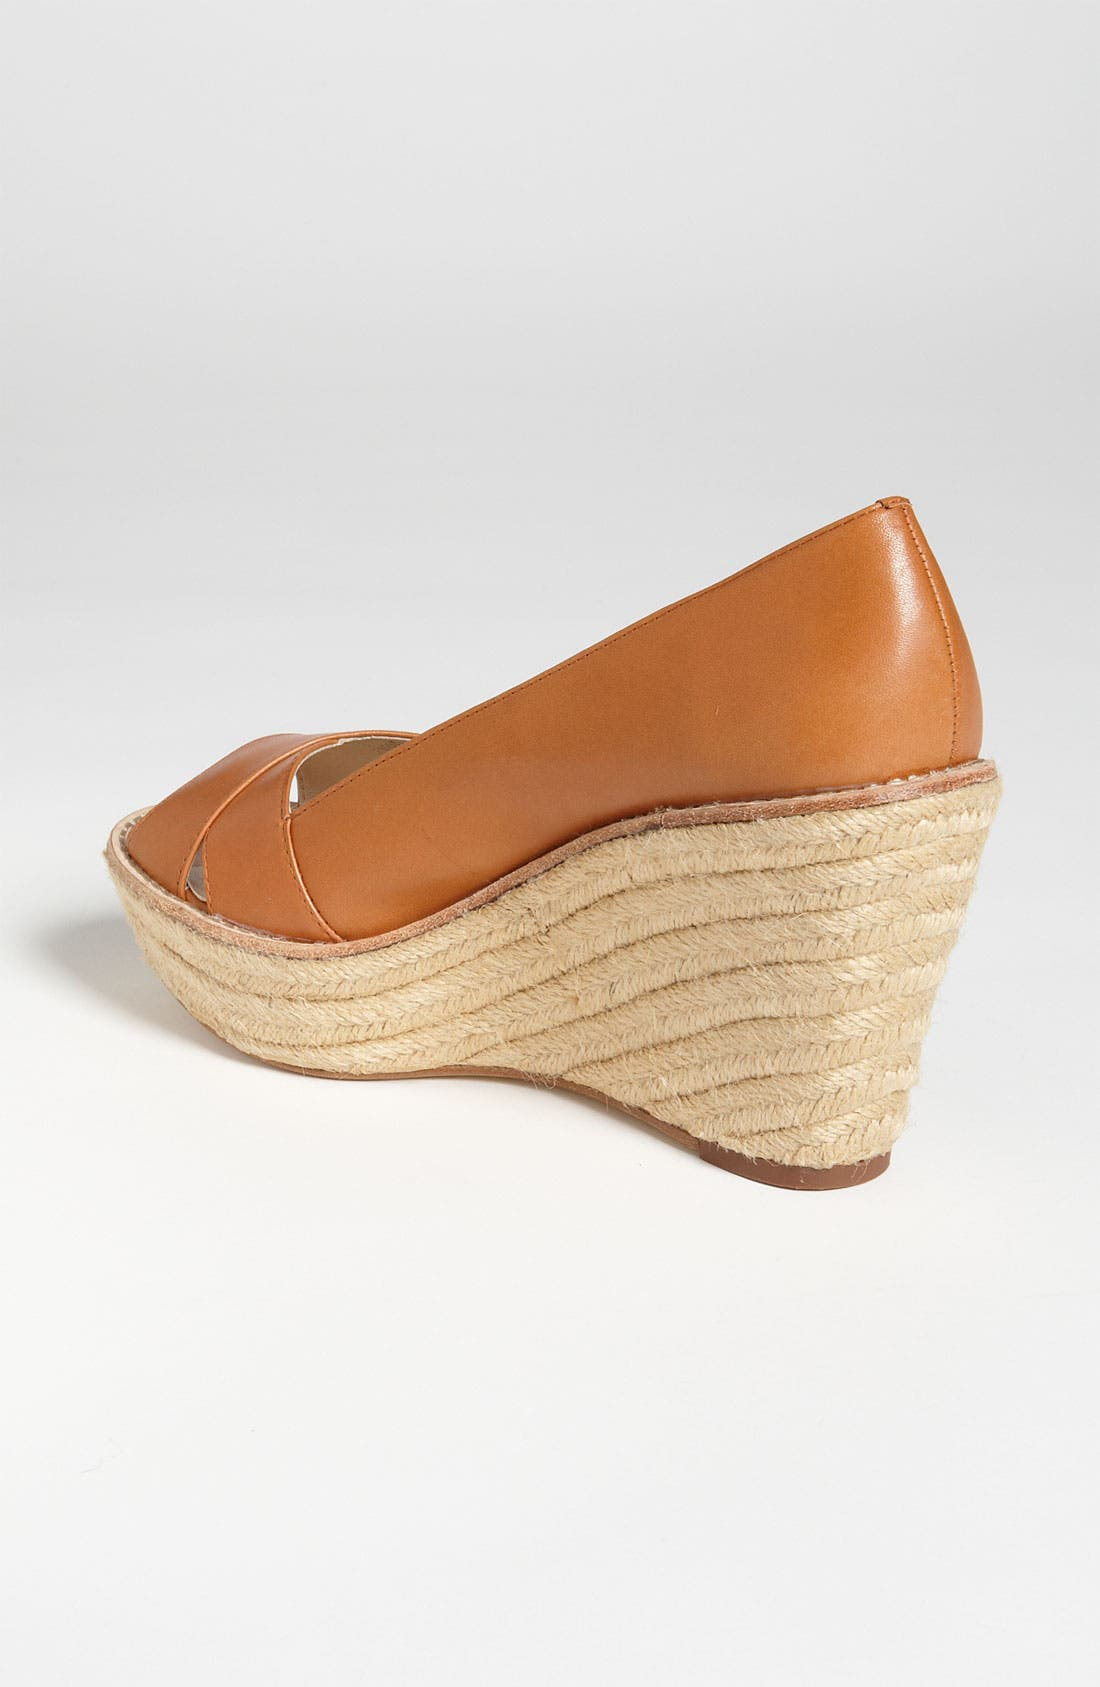 Alternate Image 2  - KORS Michael Kors 'Upland' Wedge